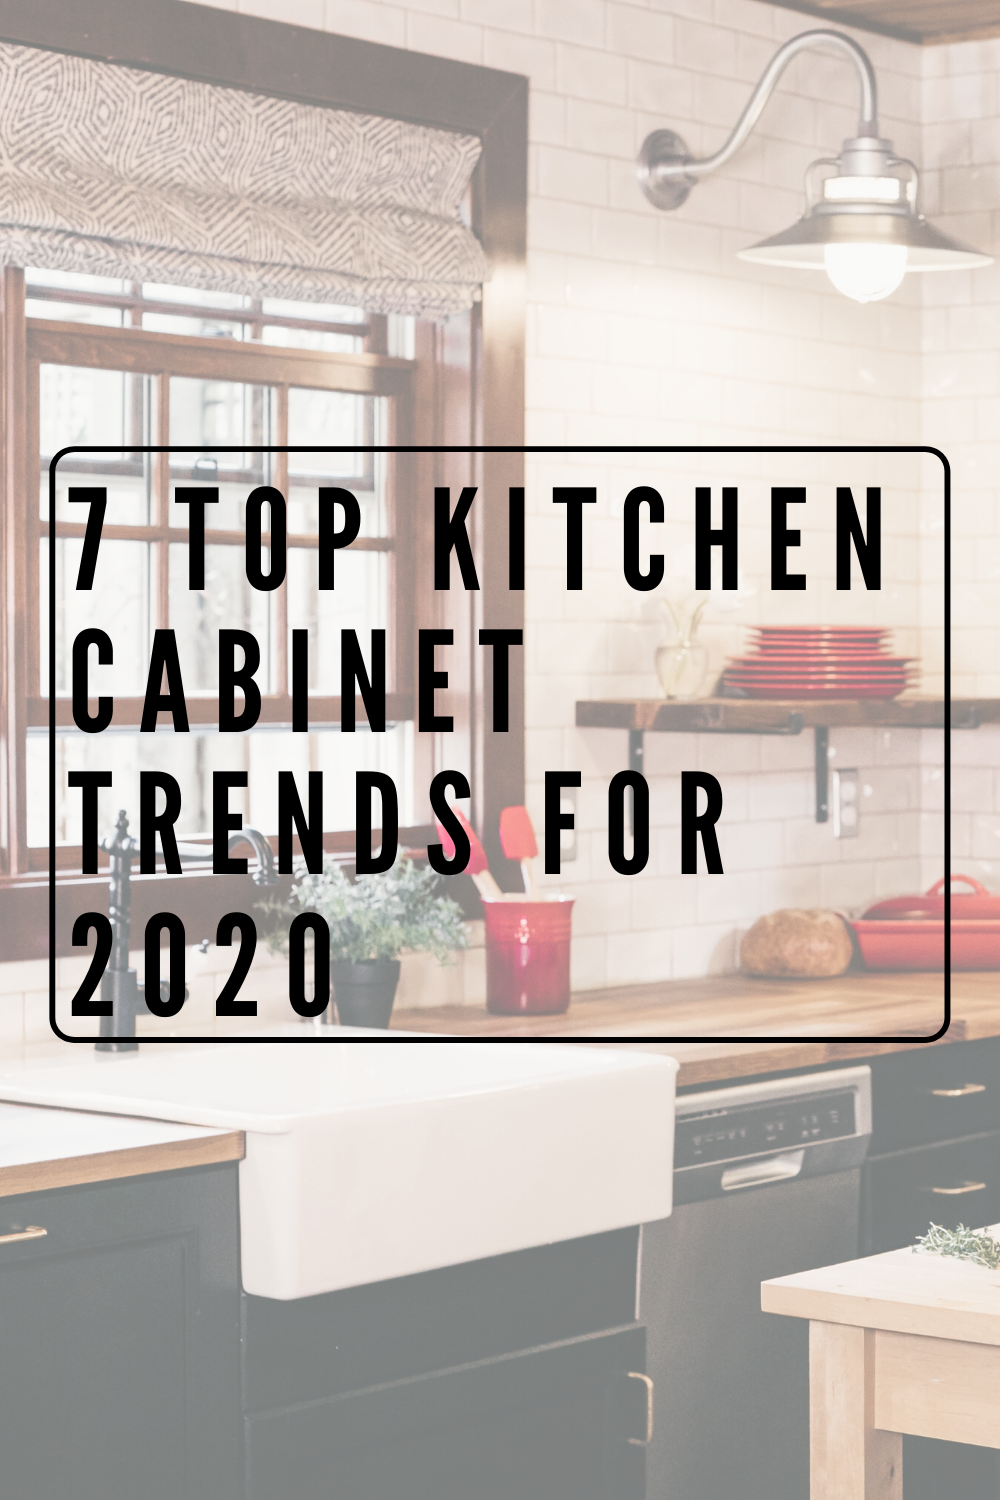 7 Top Kitchen Cabinet Trends For 2020 In 2020 Kitchen Cabinet Trends Top Kitchen Cabinets Top Kitchen Trends